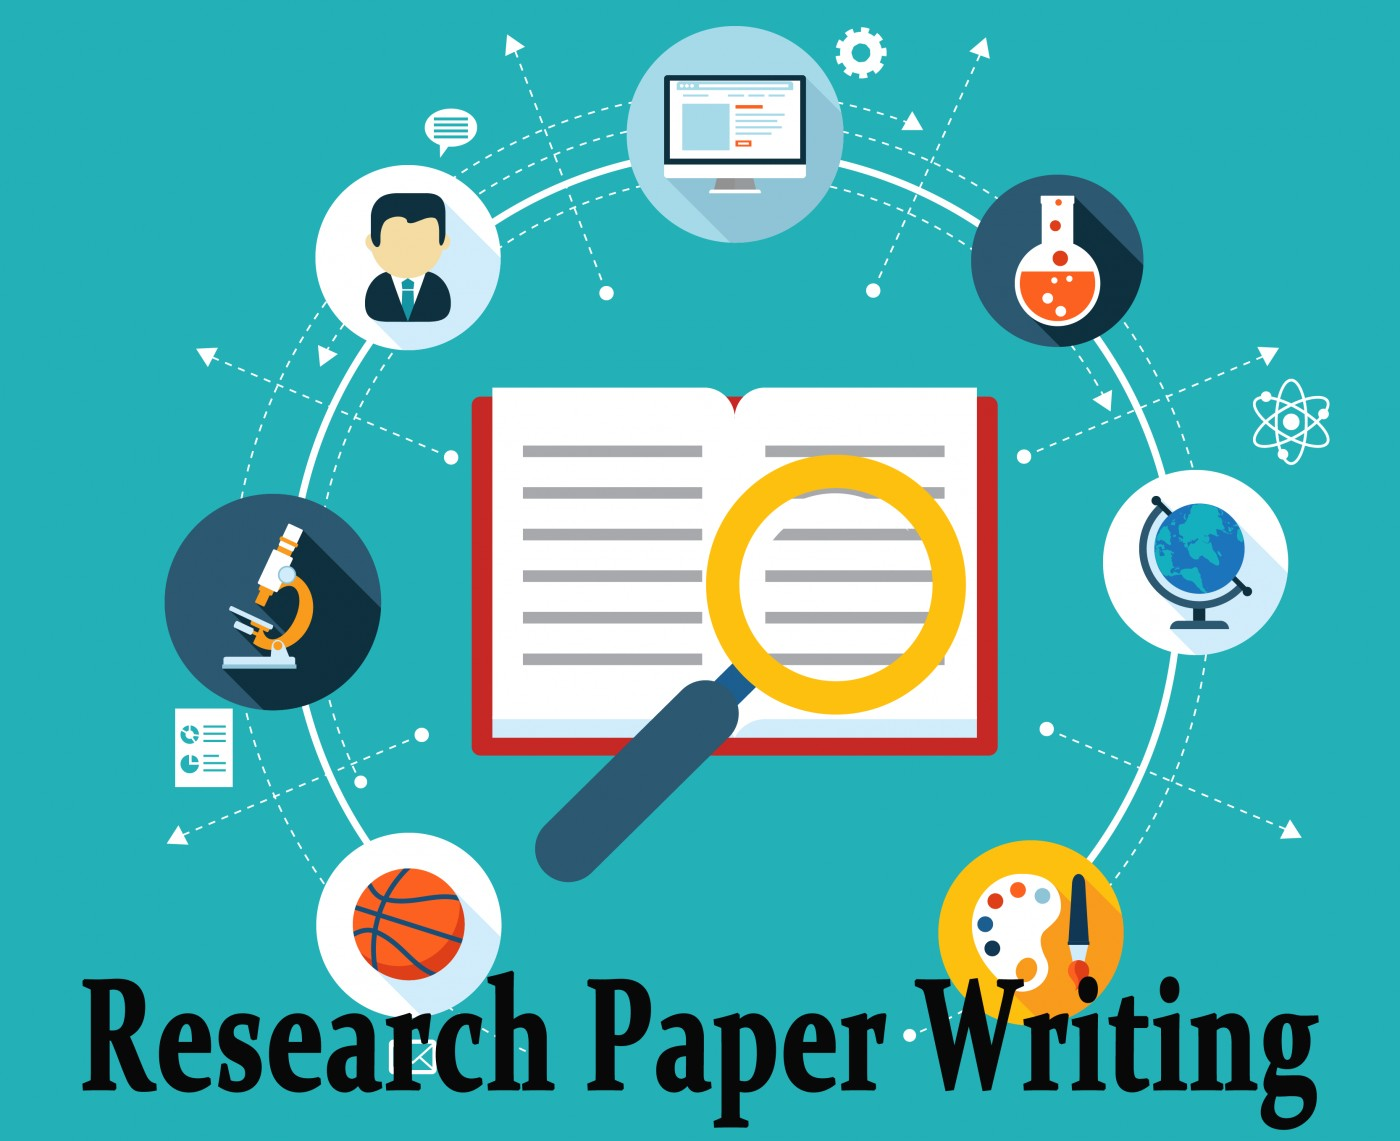 009 Writing The Research Paper 503 Effective Phenomenal Pdf How To Write A Outline Ppt Papers Complete Guide 16th Edition 1400